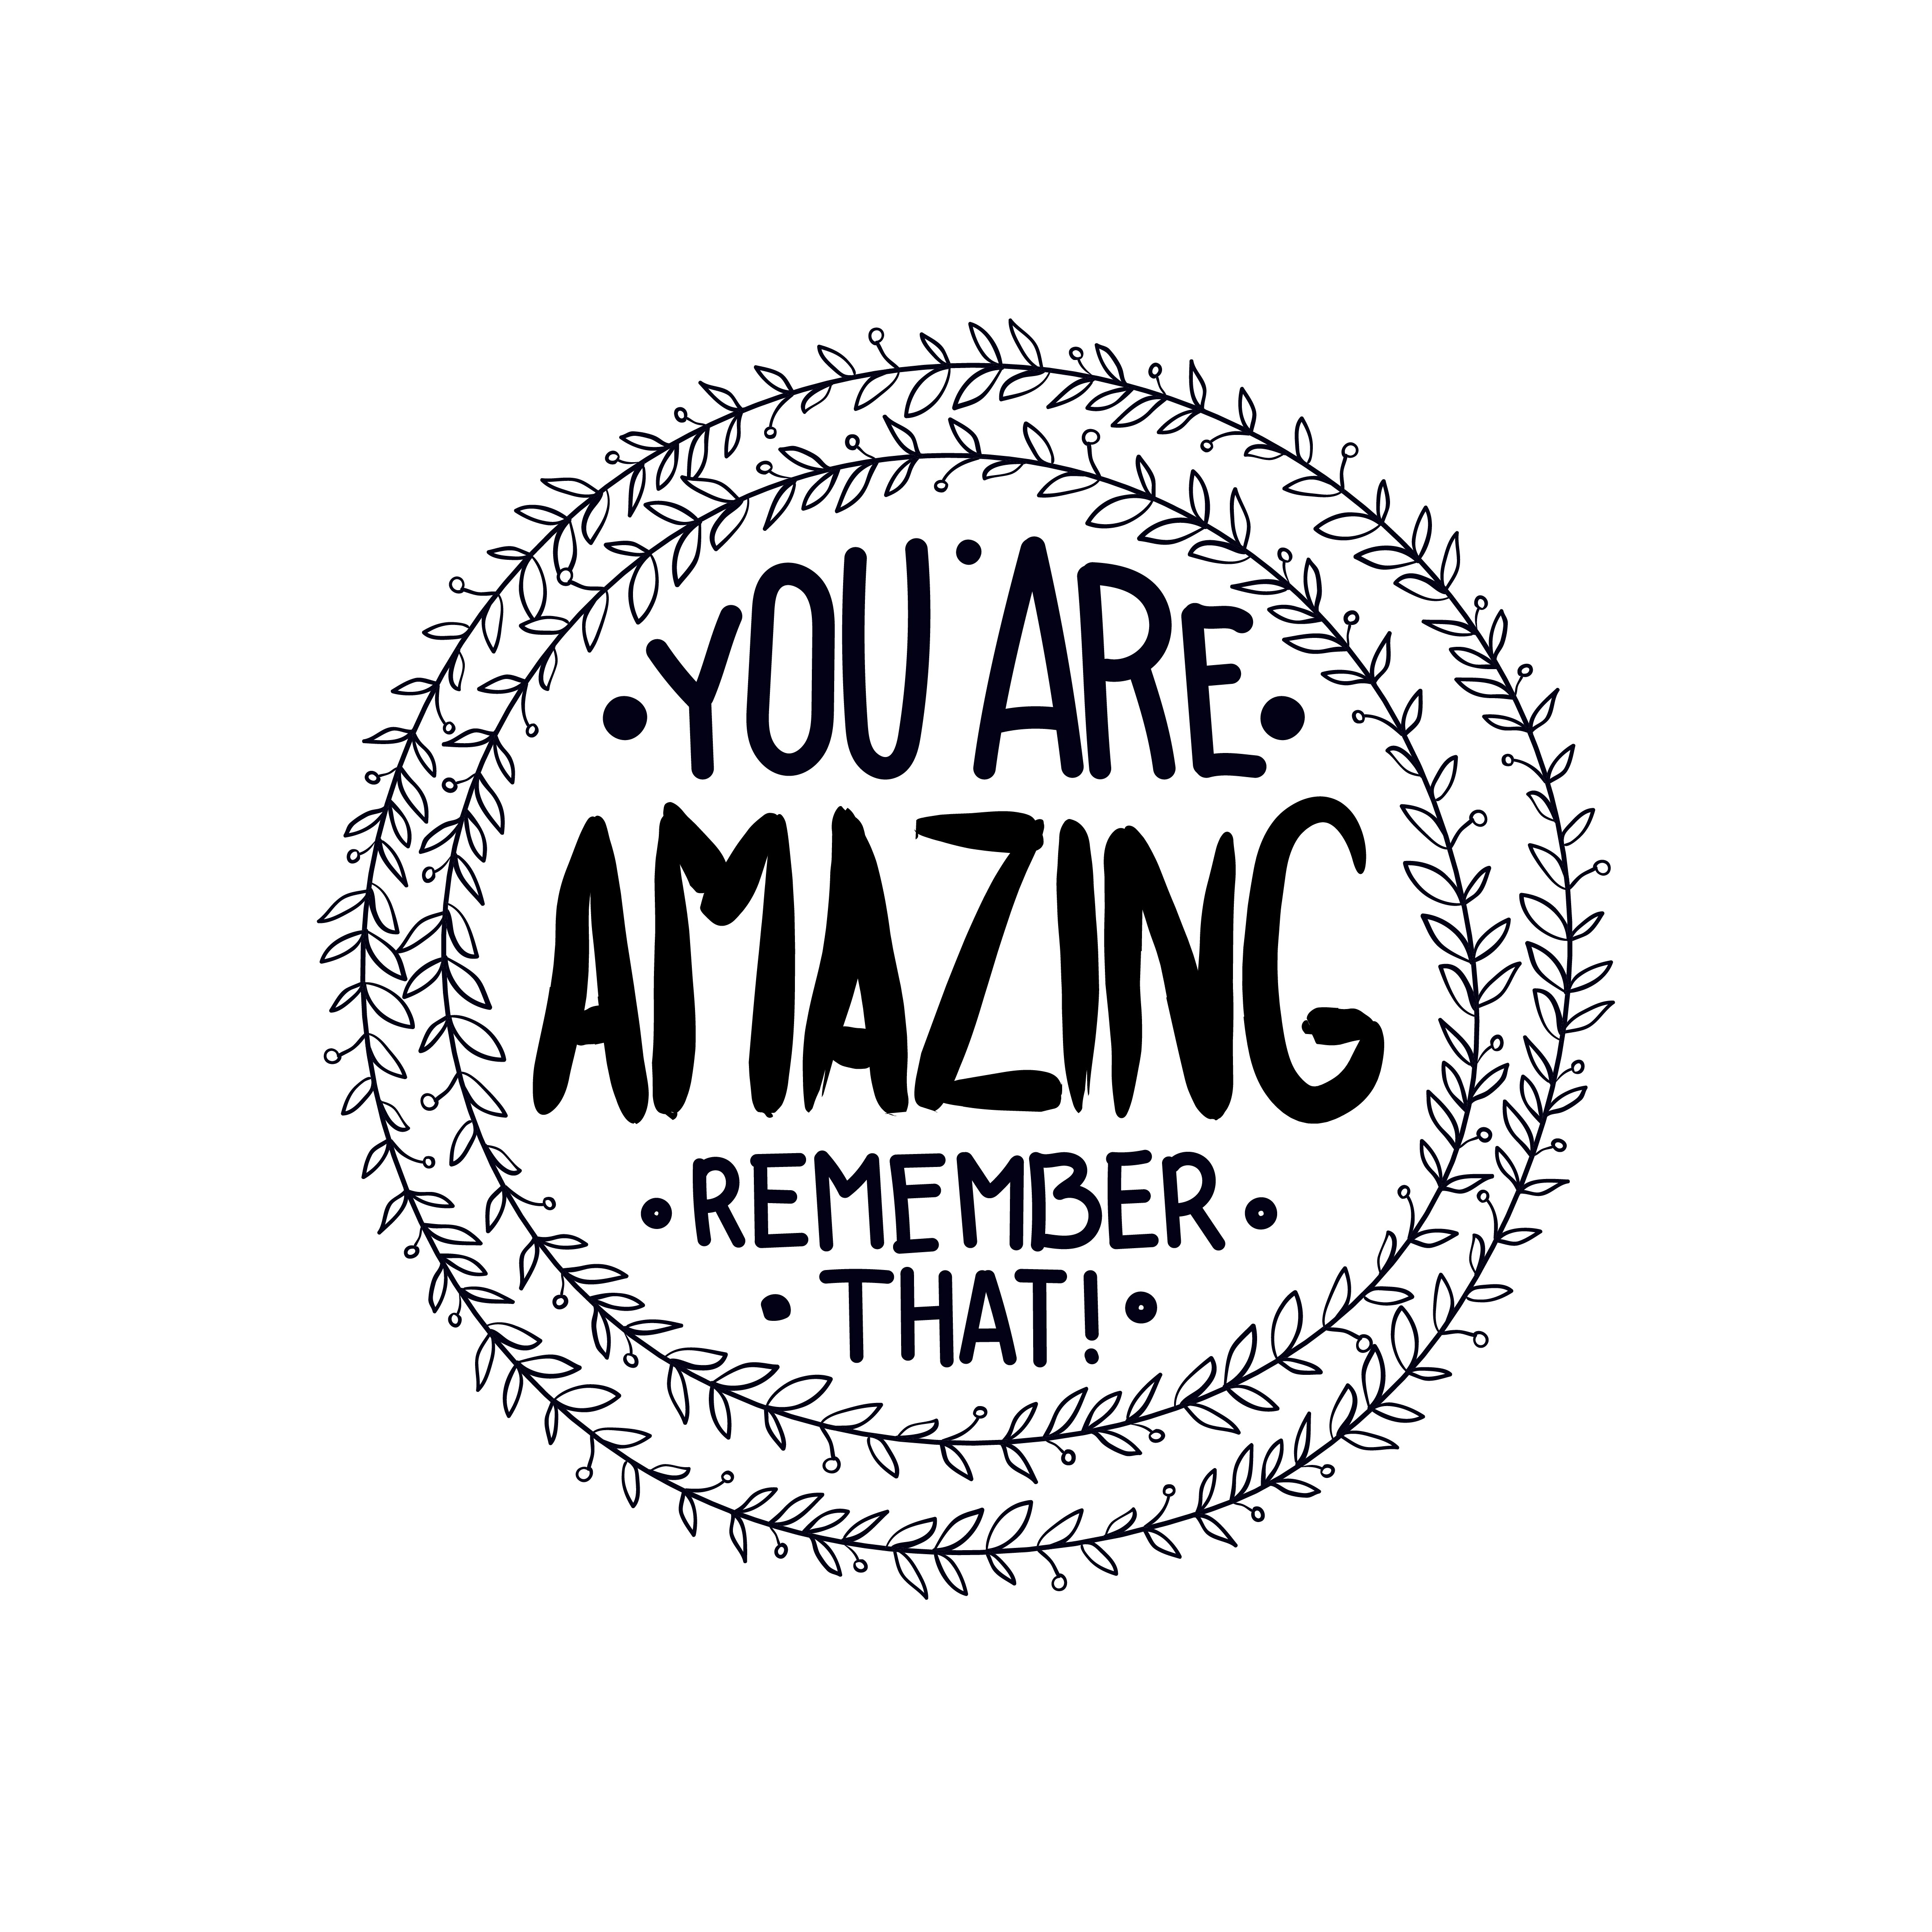 You Are Amazing Remember That Inspirational Quotes